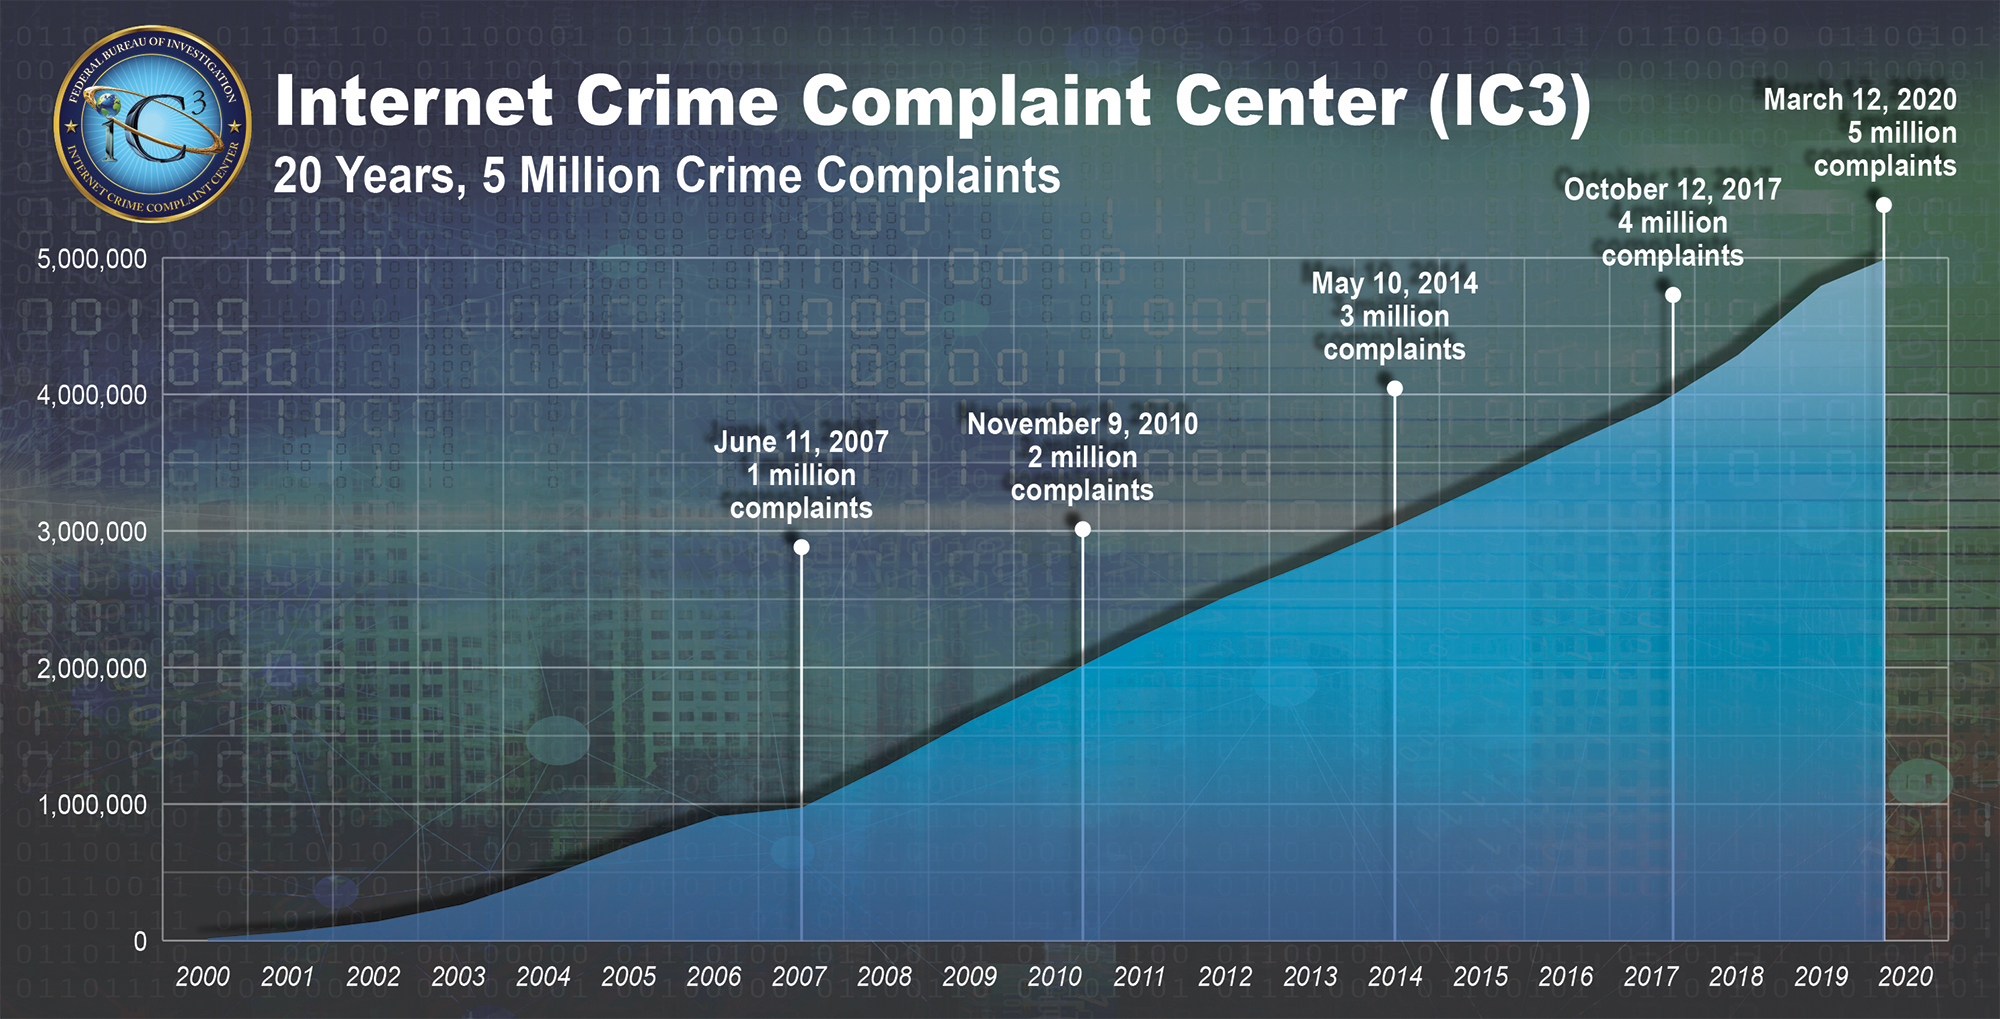 Chart depicting rise in complaints submitted to the Internet Crime Complaint Center (IC3) since it began in 2000. IC3 hit 5 million complaints in March 2020.